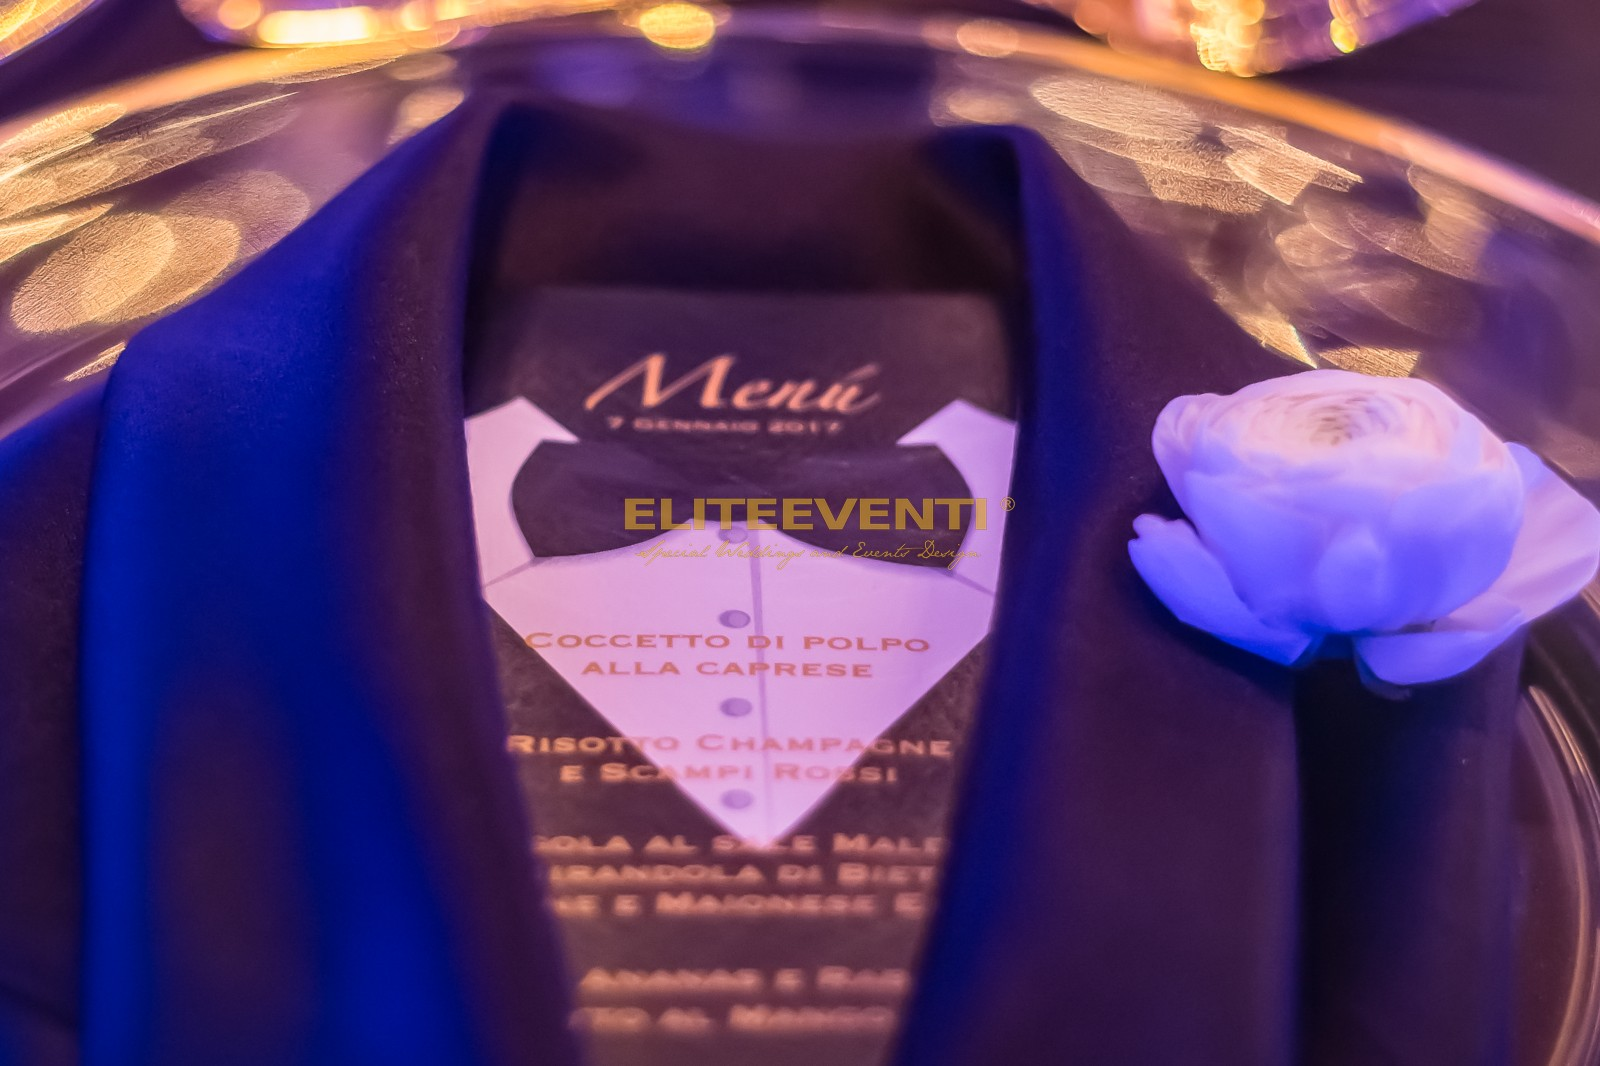 Mise an place personalizzata by Eliteeventi